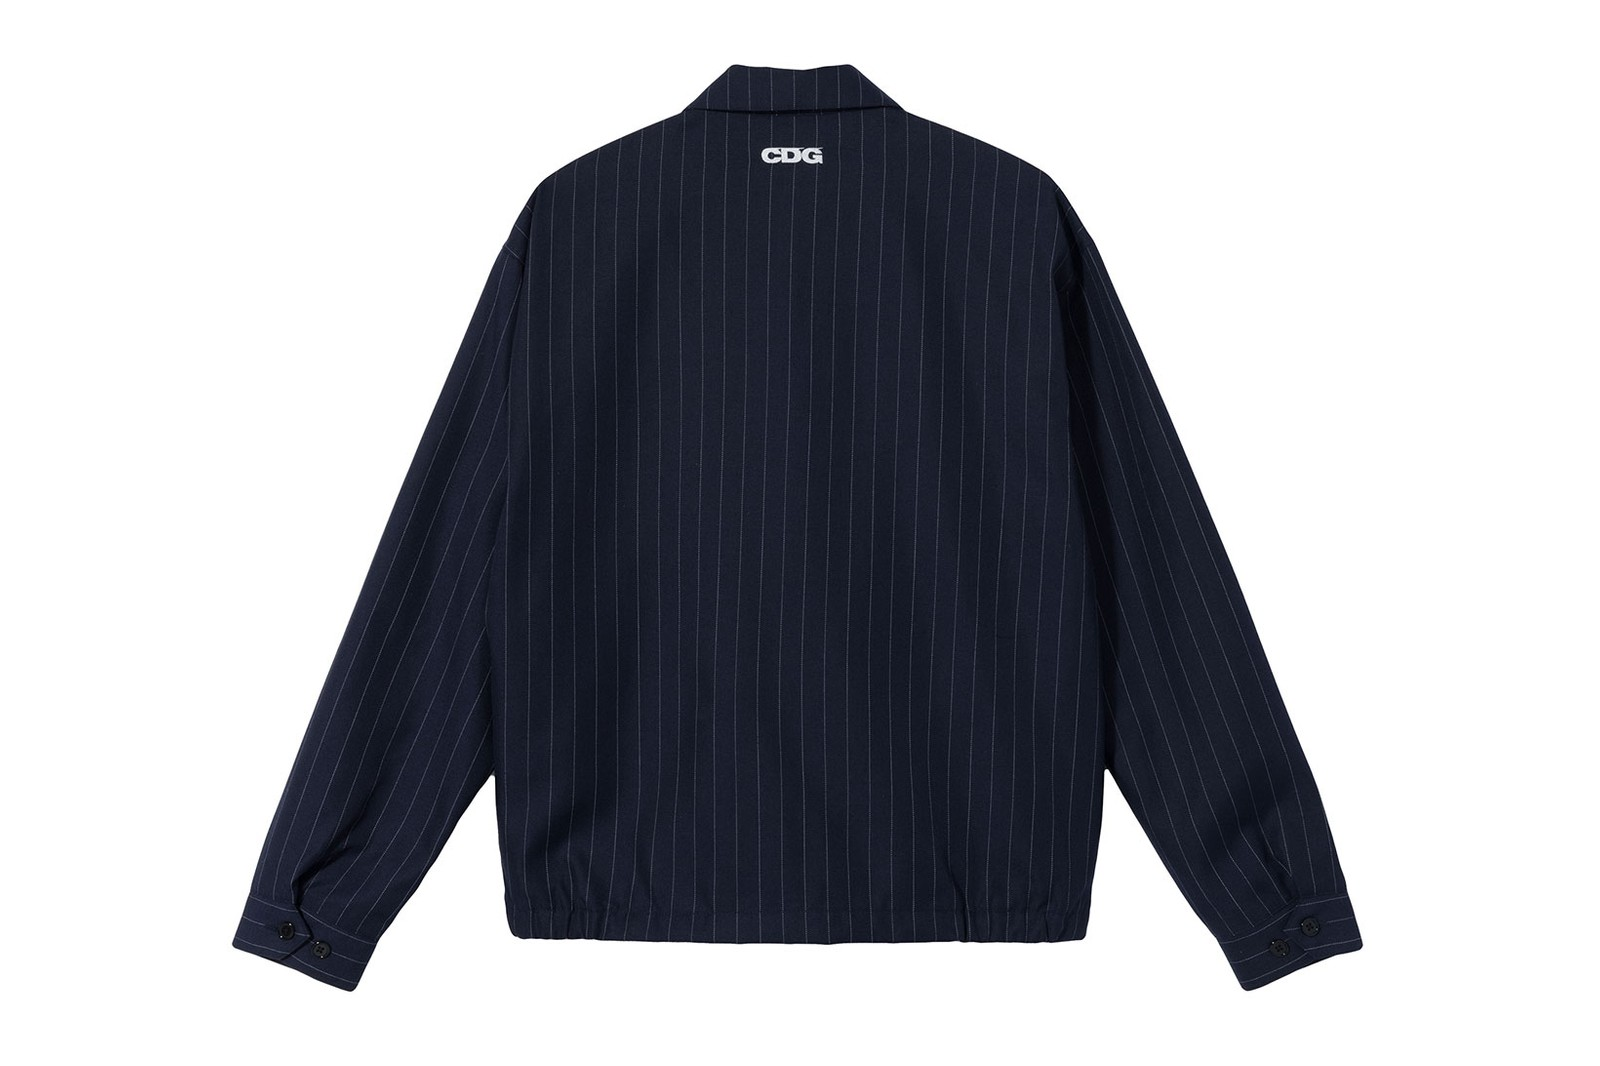 stussy cdg comme des garcons collaboration ma1 bomber jacket t-shirts bucket hats full look release